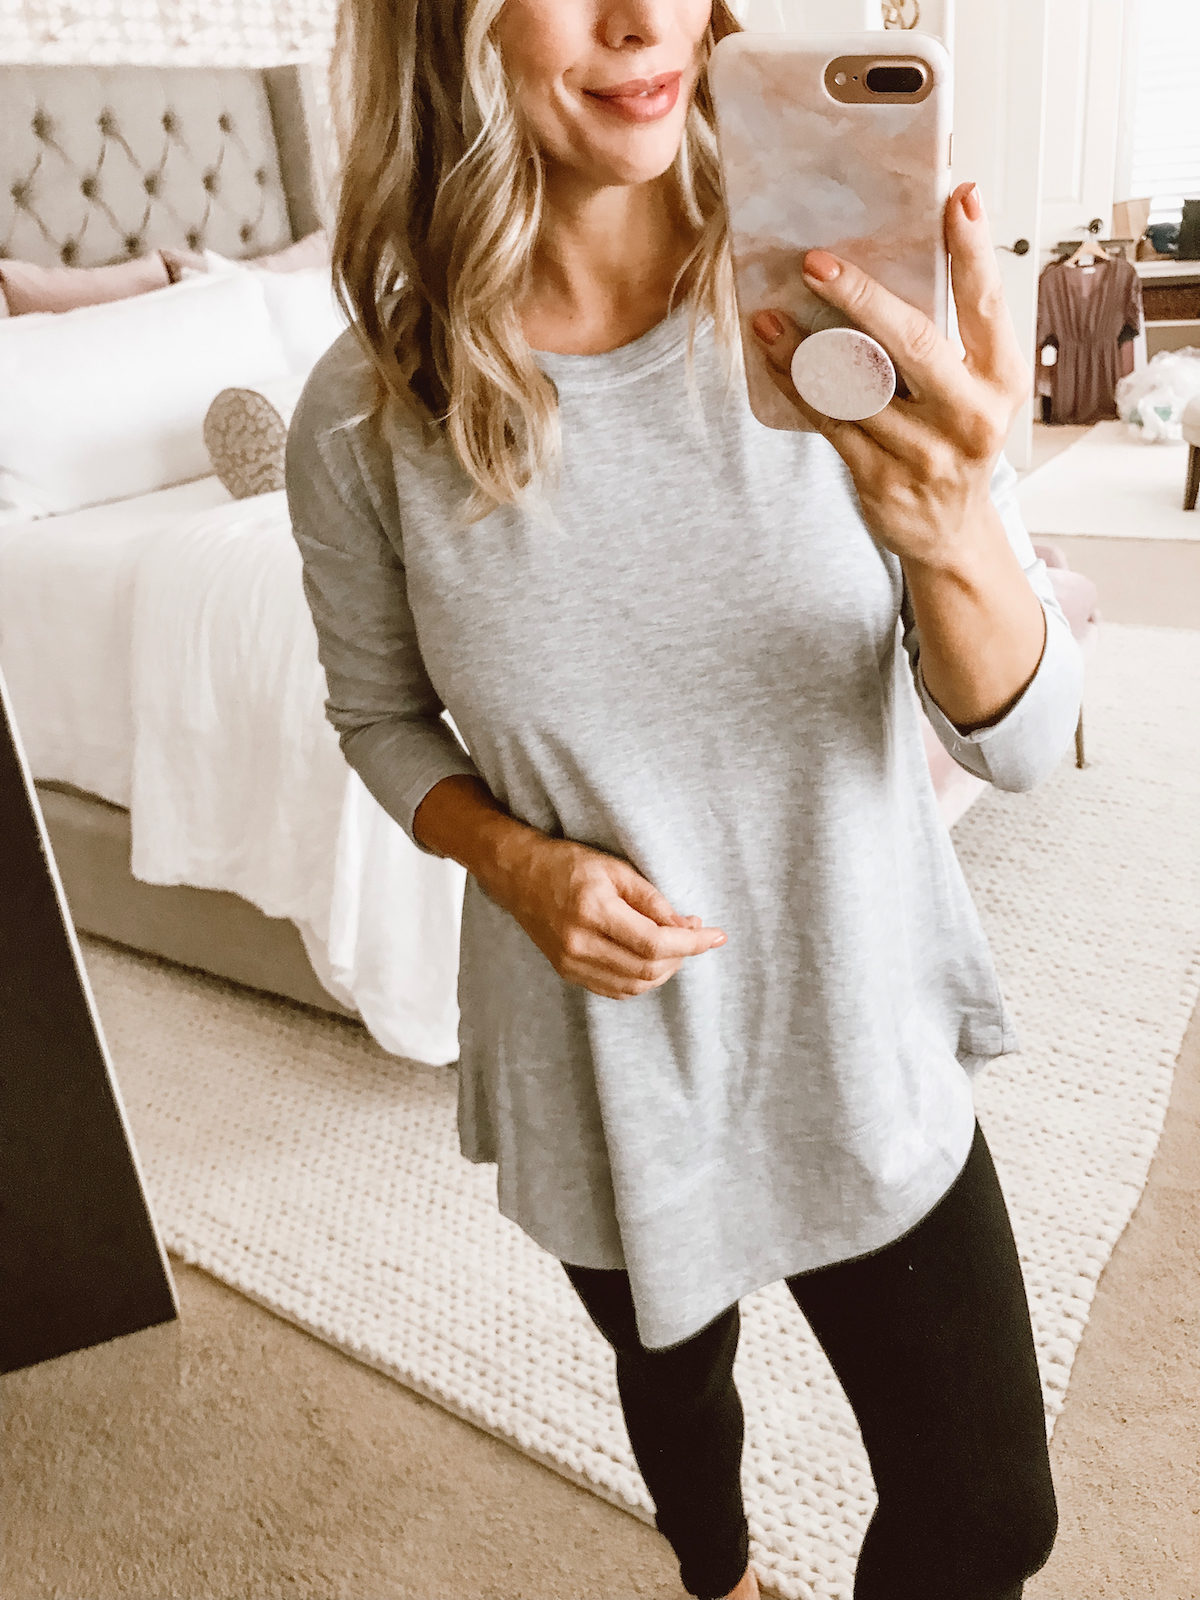 Comfy fitness outfit